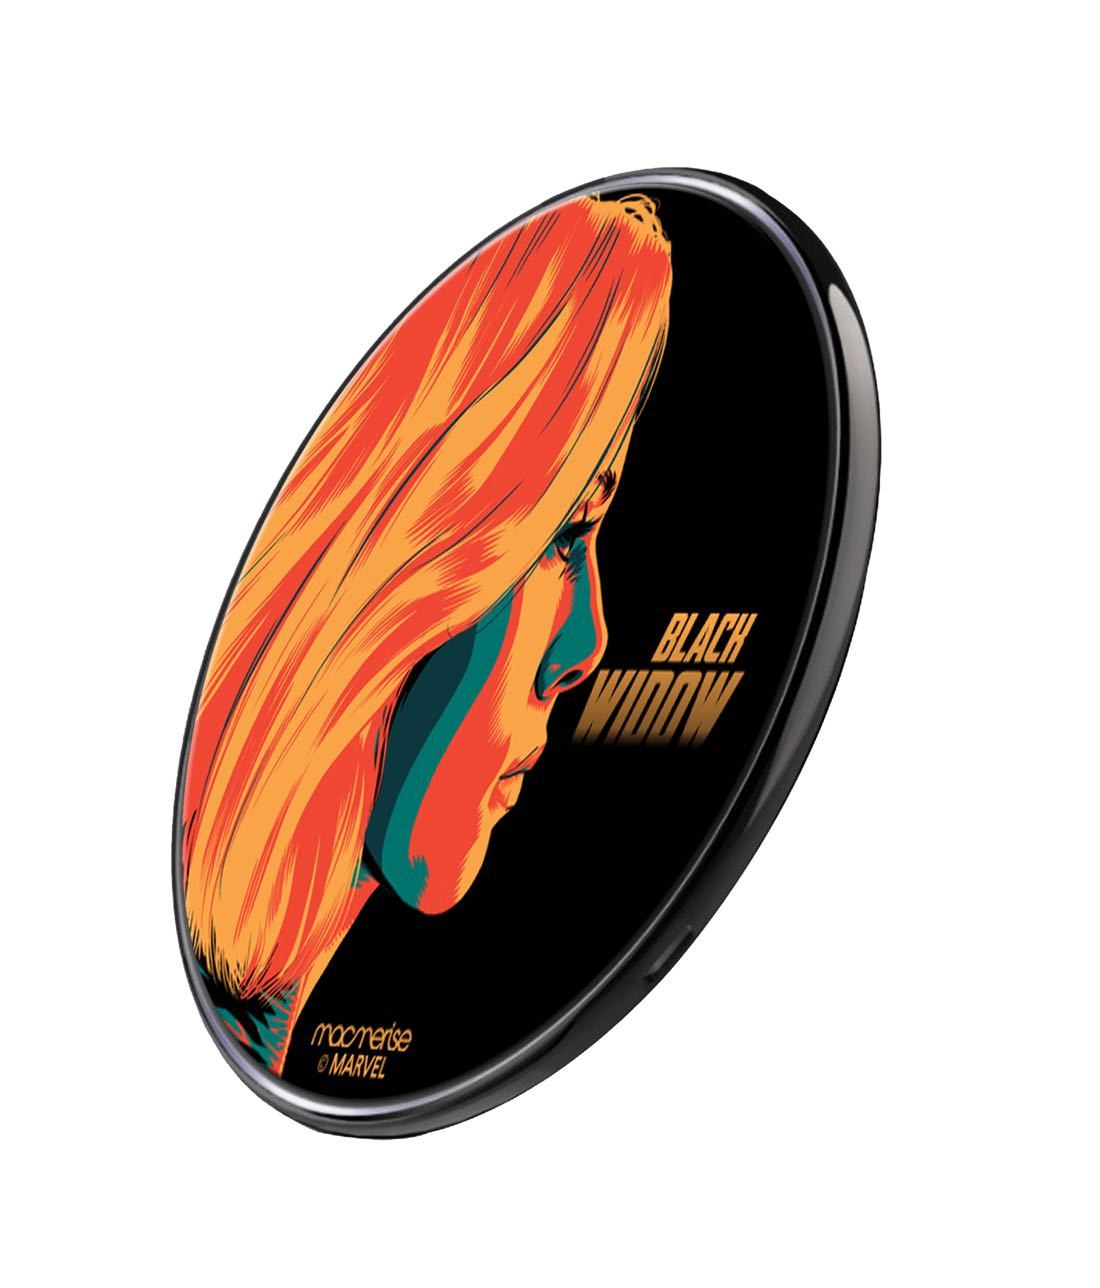 Illuminated Black Widow Wireless Charger by Macmerise -Macmerise - India - www.superherotoystore.com